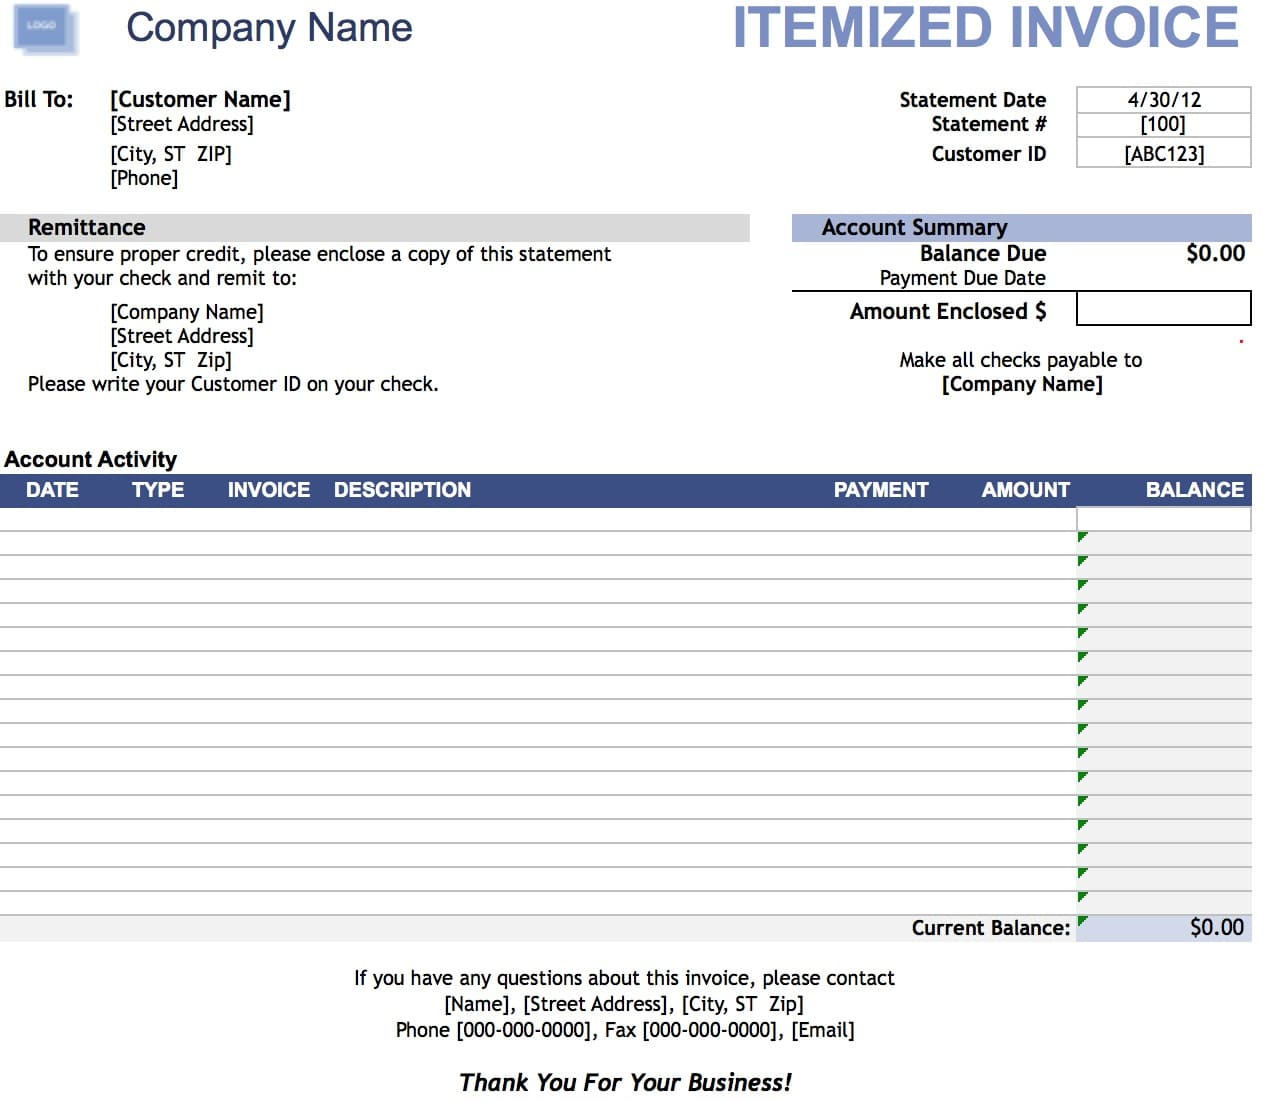 Free Blank Invoice Templates In PDF, Word, U0026 Excel  Business Receipt Template Word